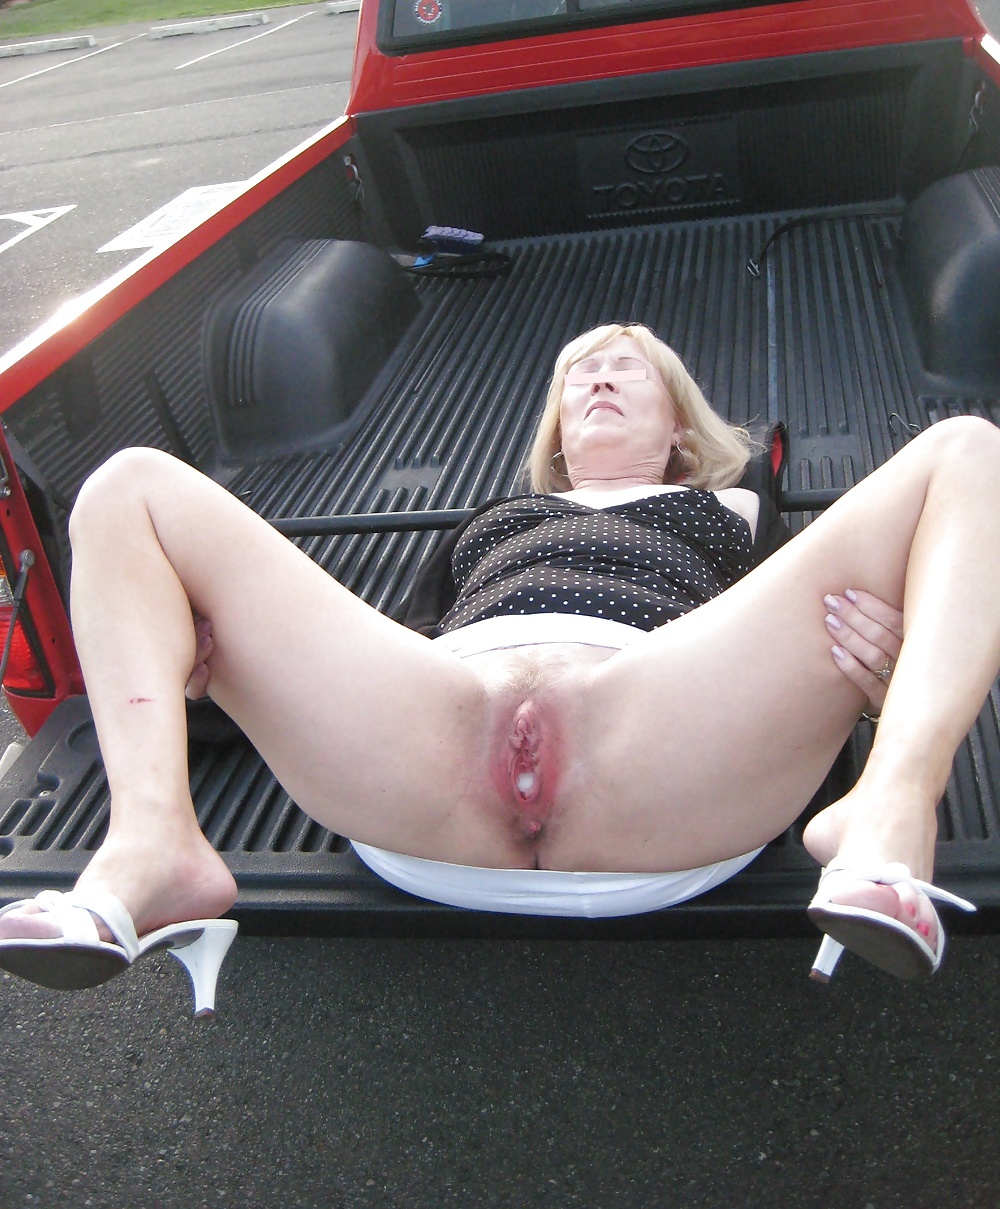 Blowjob Car Parking Lot